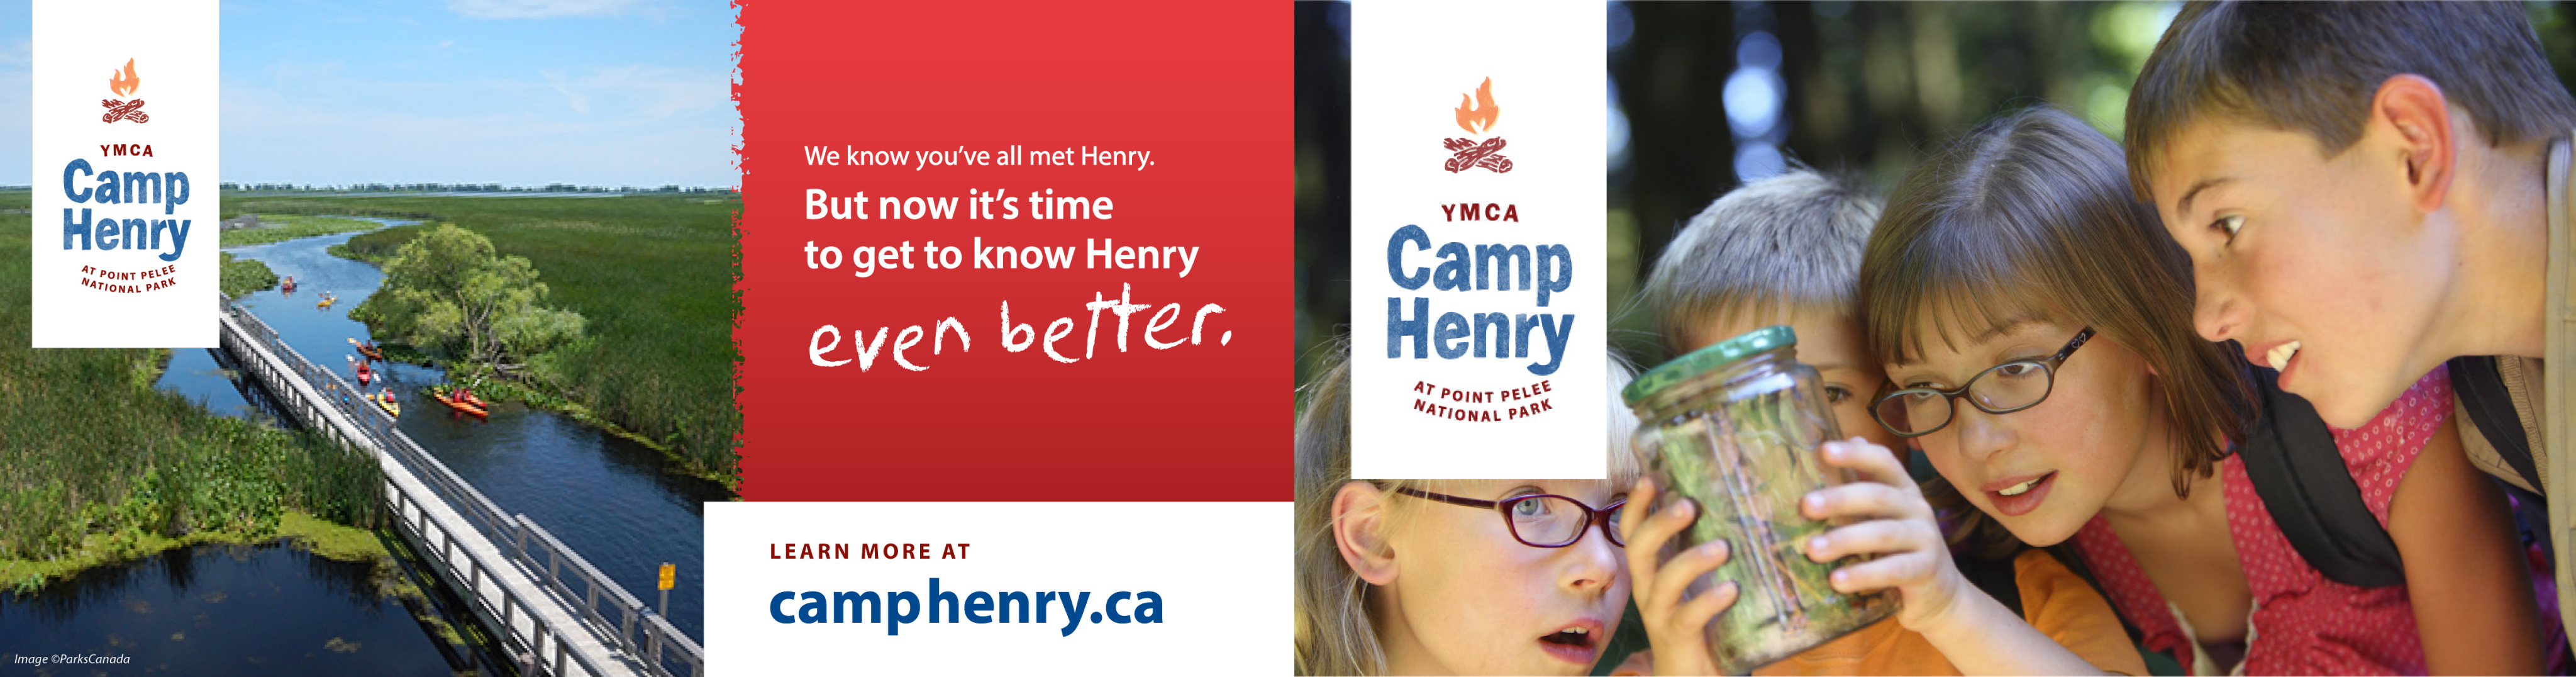 Promotional postcards displaying Camp Henry campers and campsite